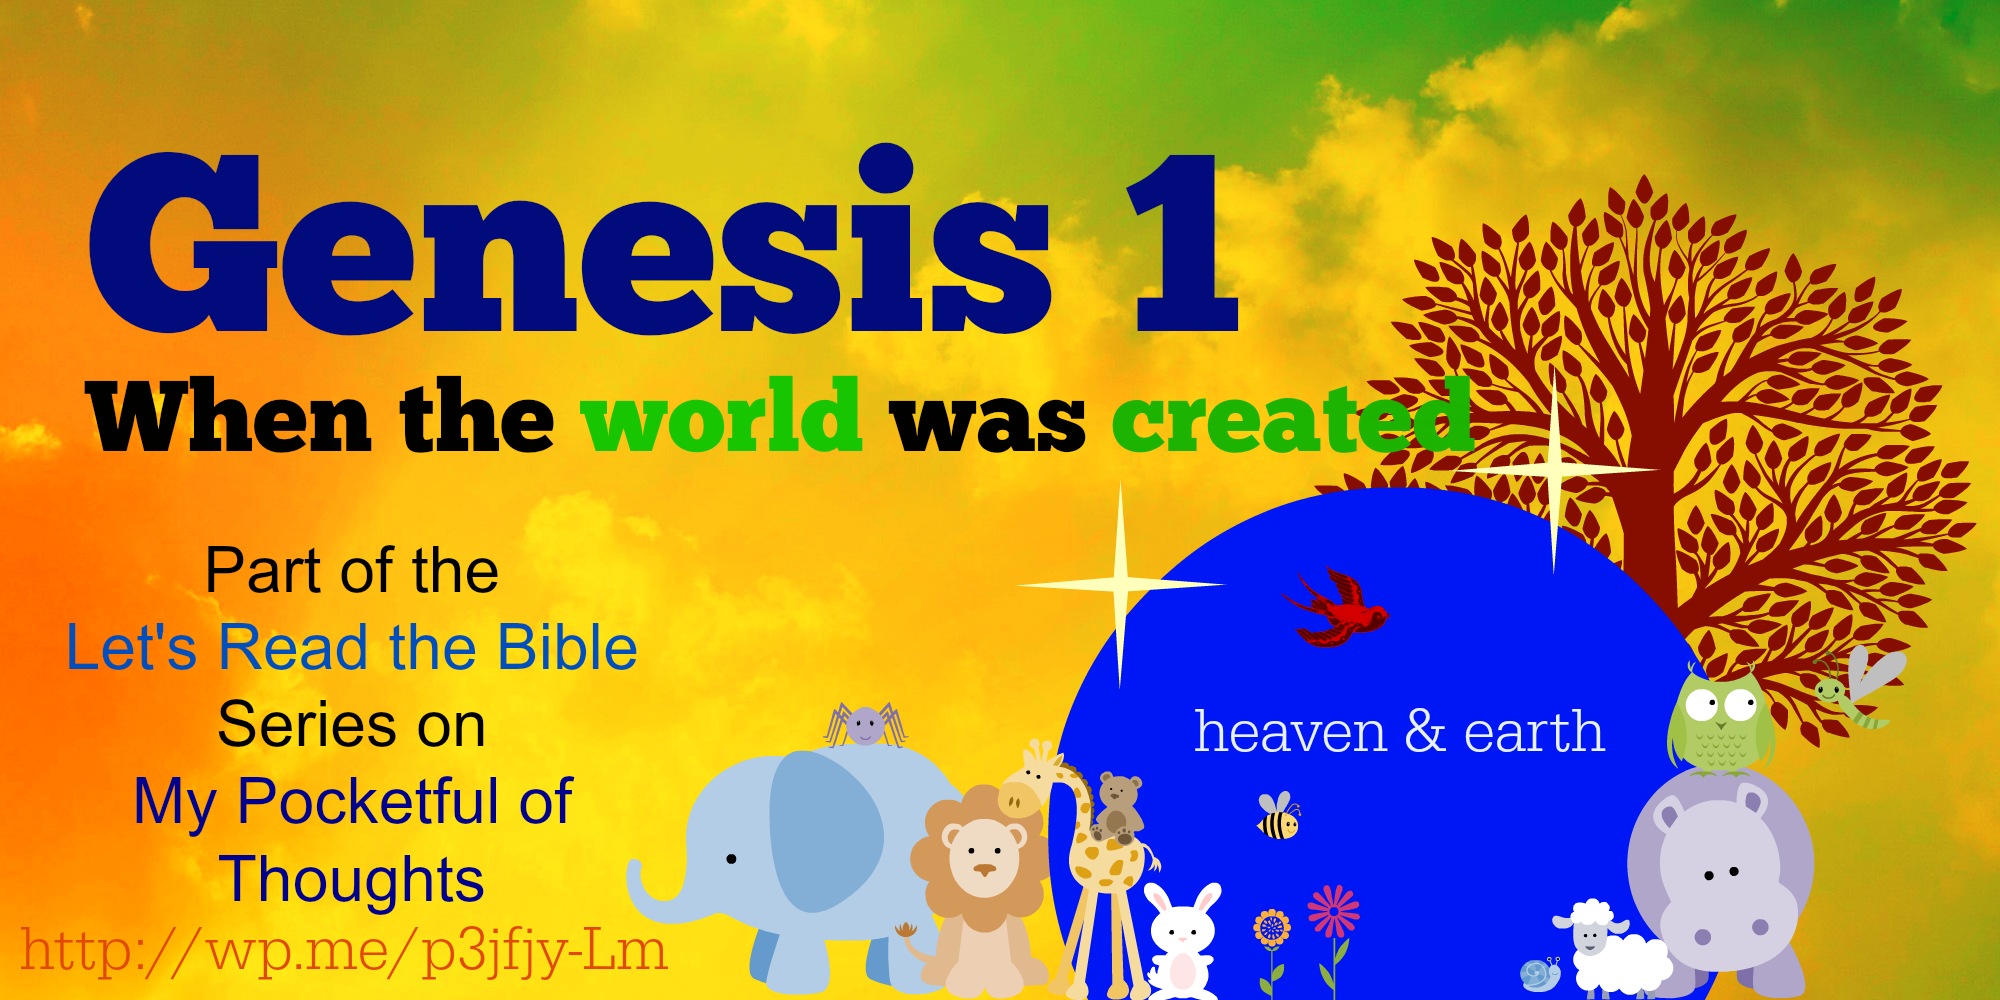 Genesis 1 - The Story of Creation  Part of the Let's Read the Bible Series on MyPocketfulofThoughts.com http://wp.me/p3jfjy-Lm